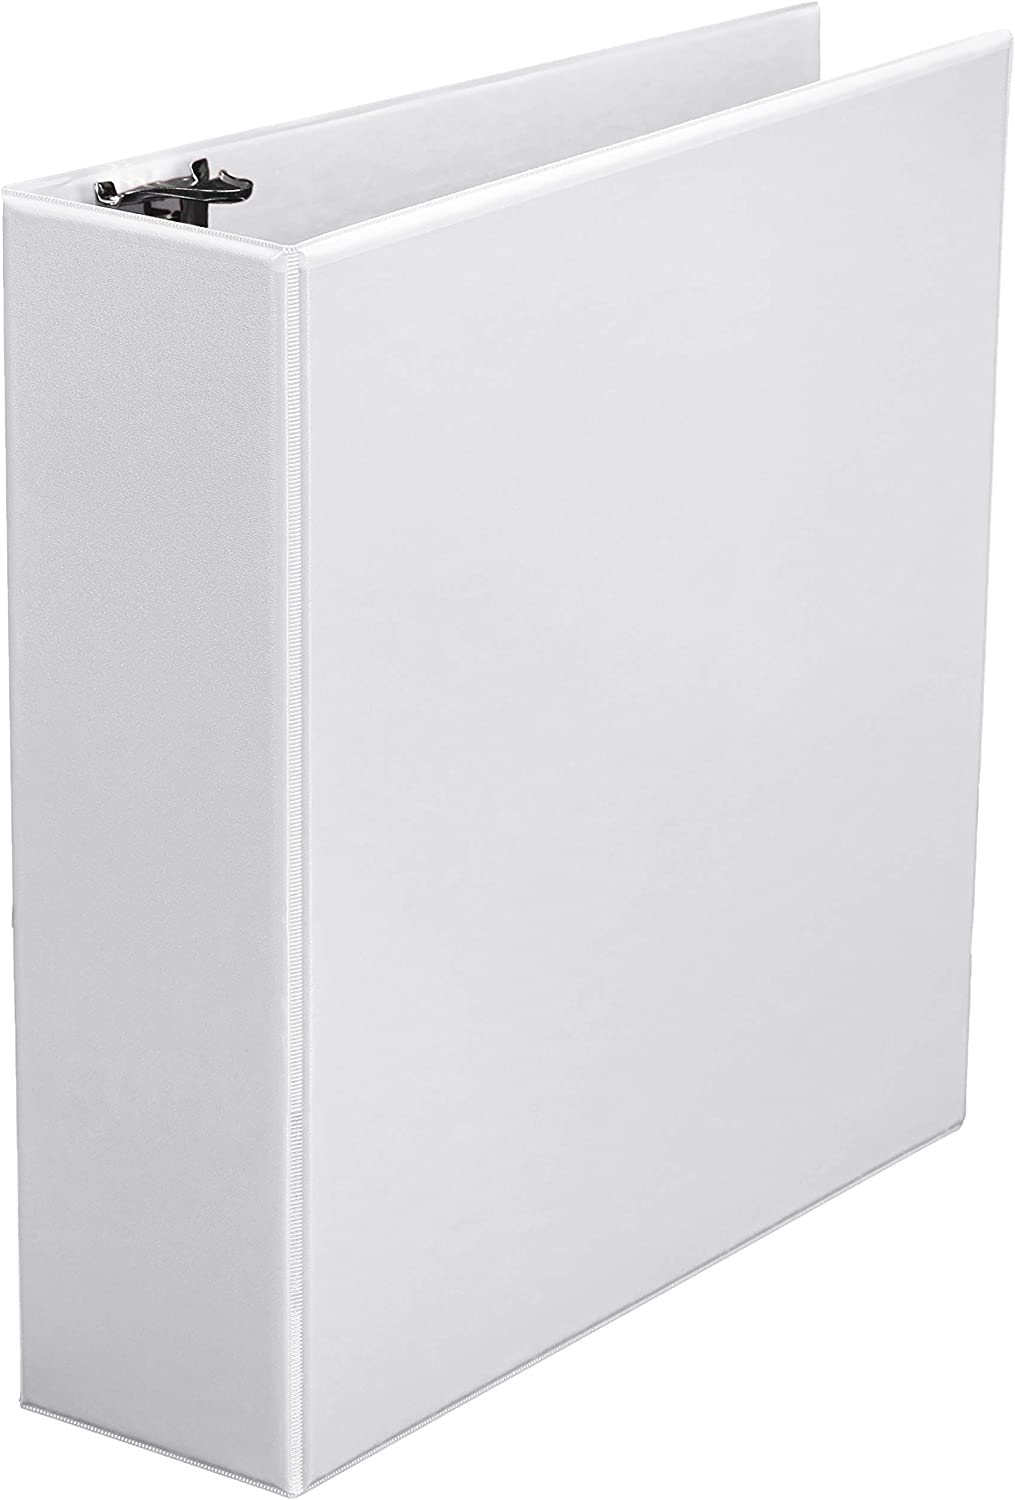 AmazonBasics 3-Inch Round Ring Binder, White, View, 4-Pack